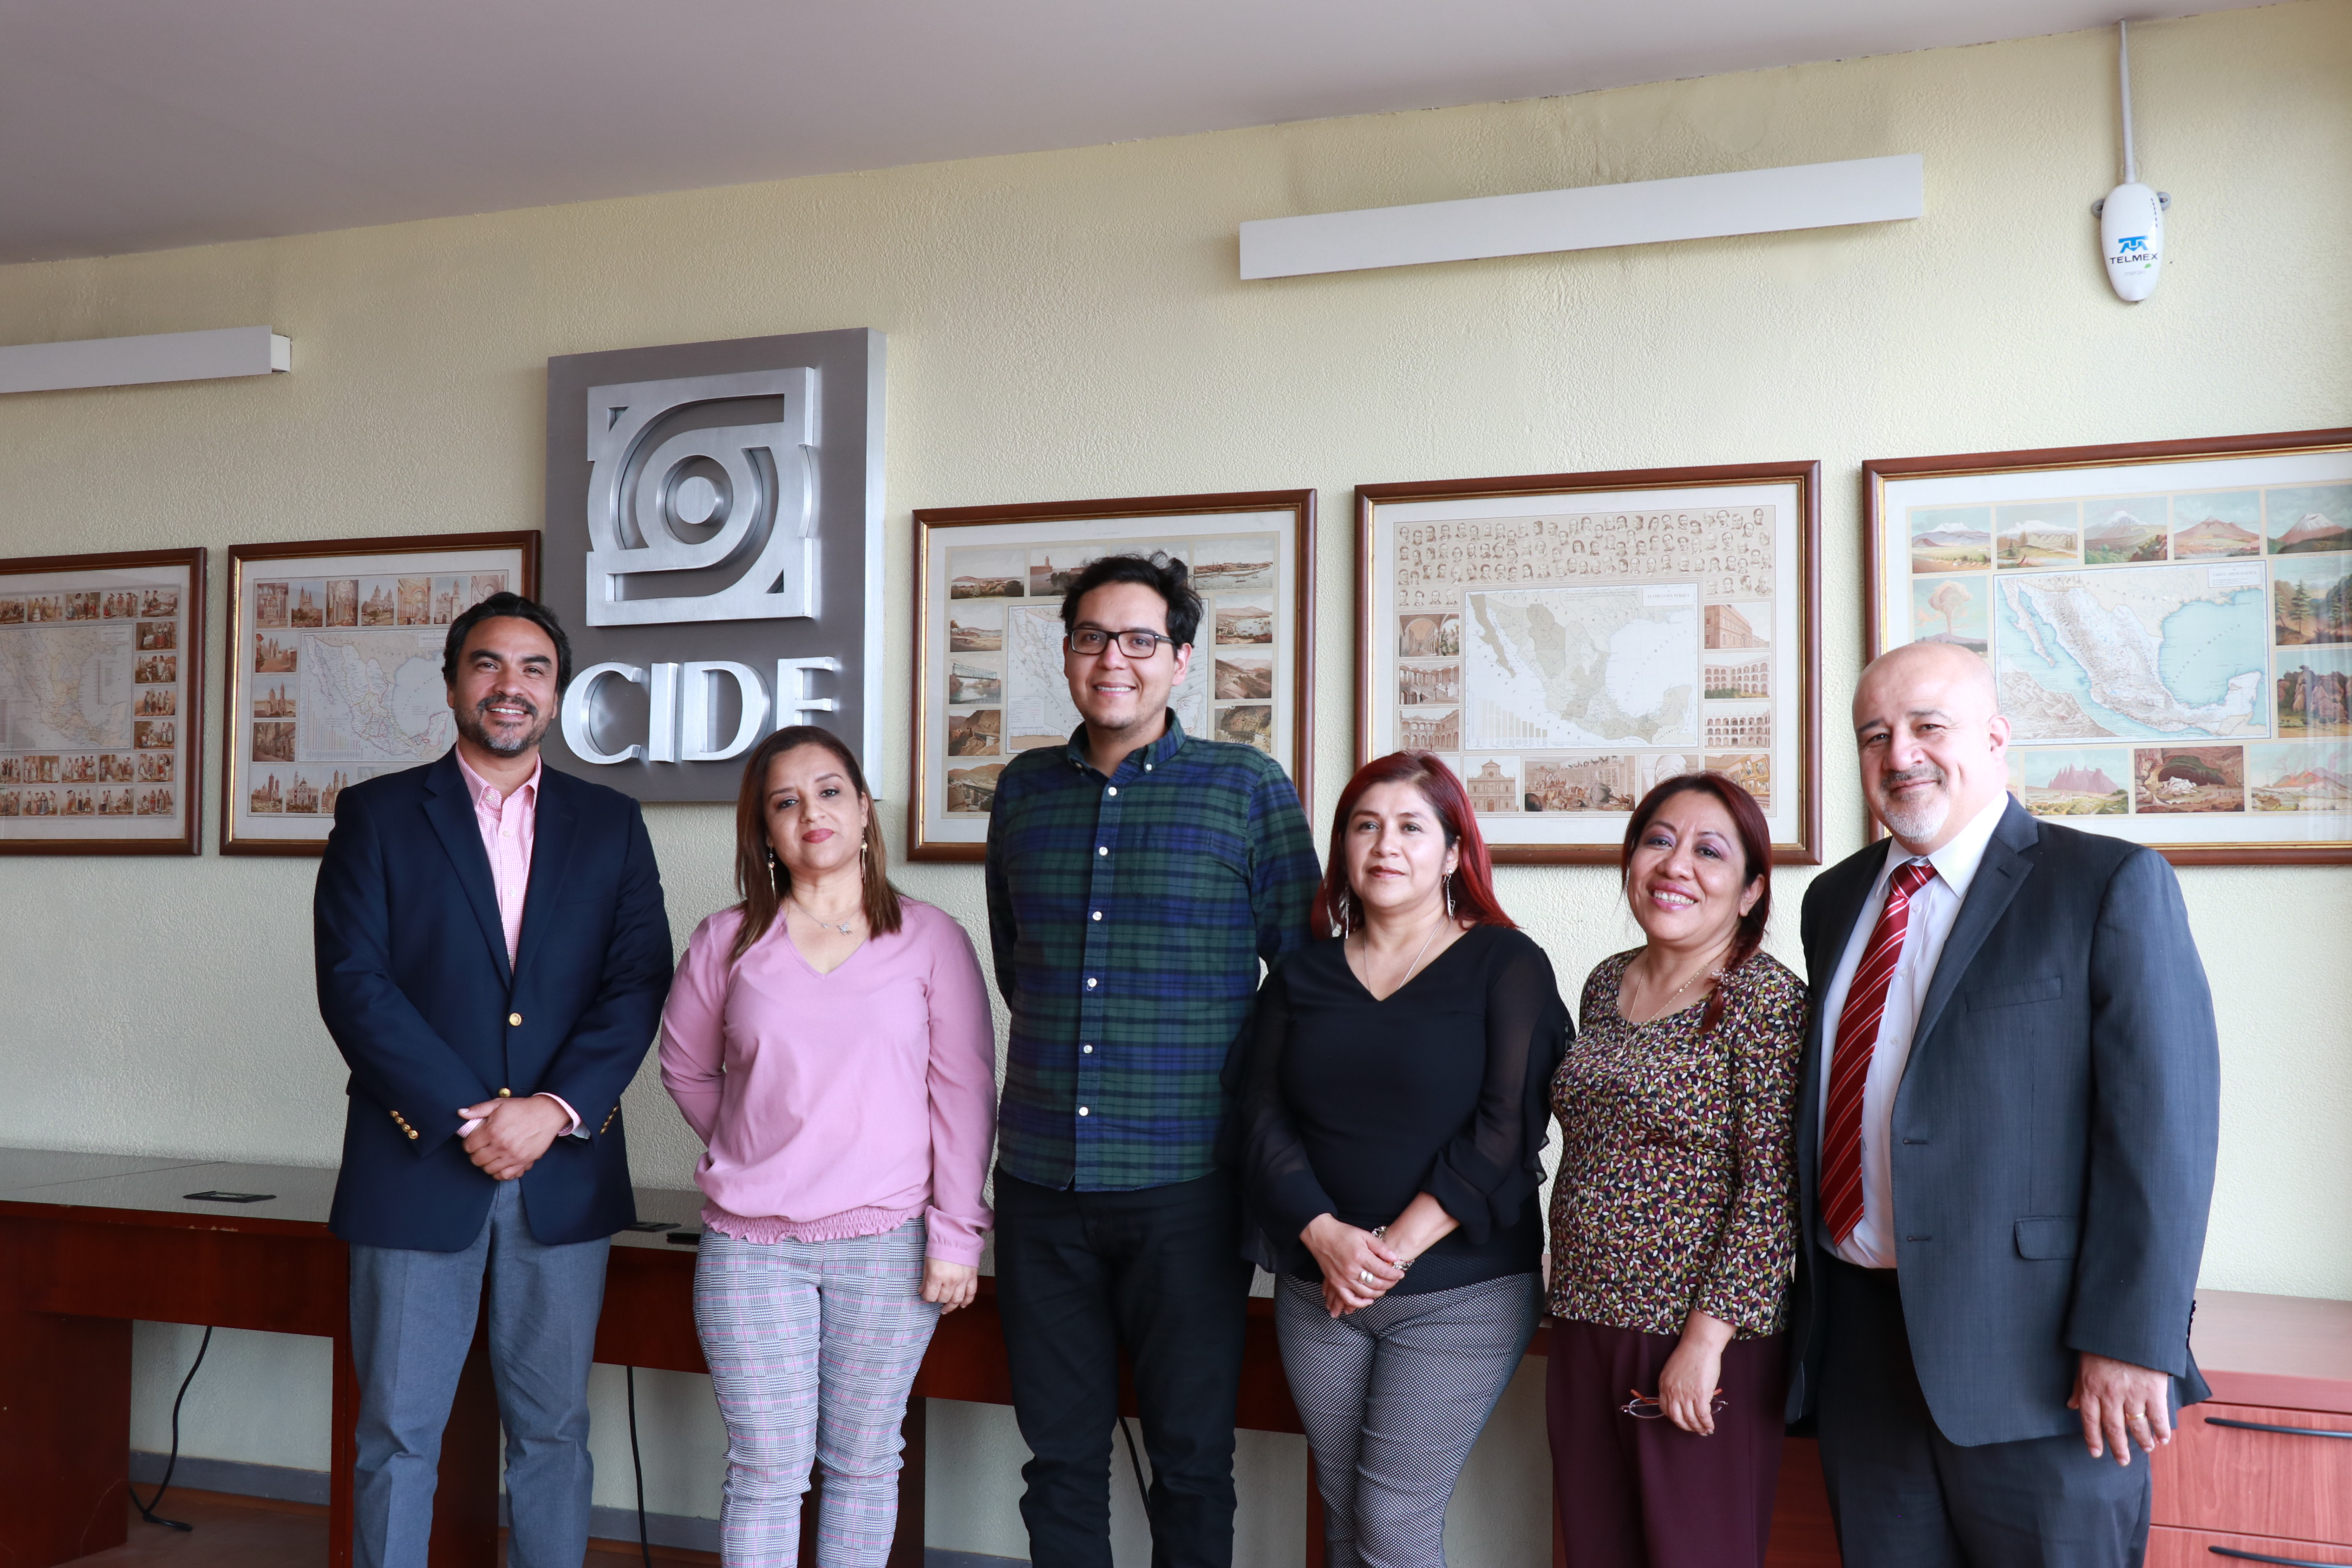 Asistentes diplomados CLEAR LAC